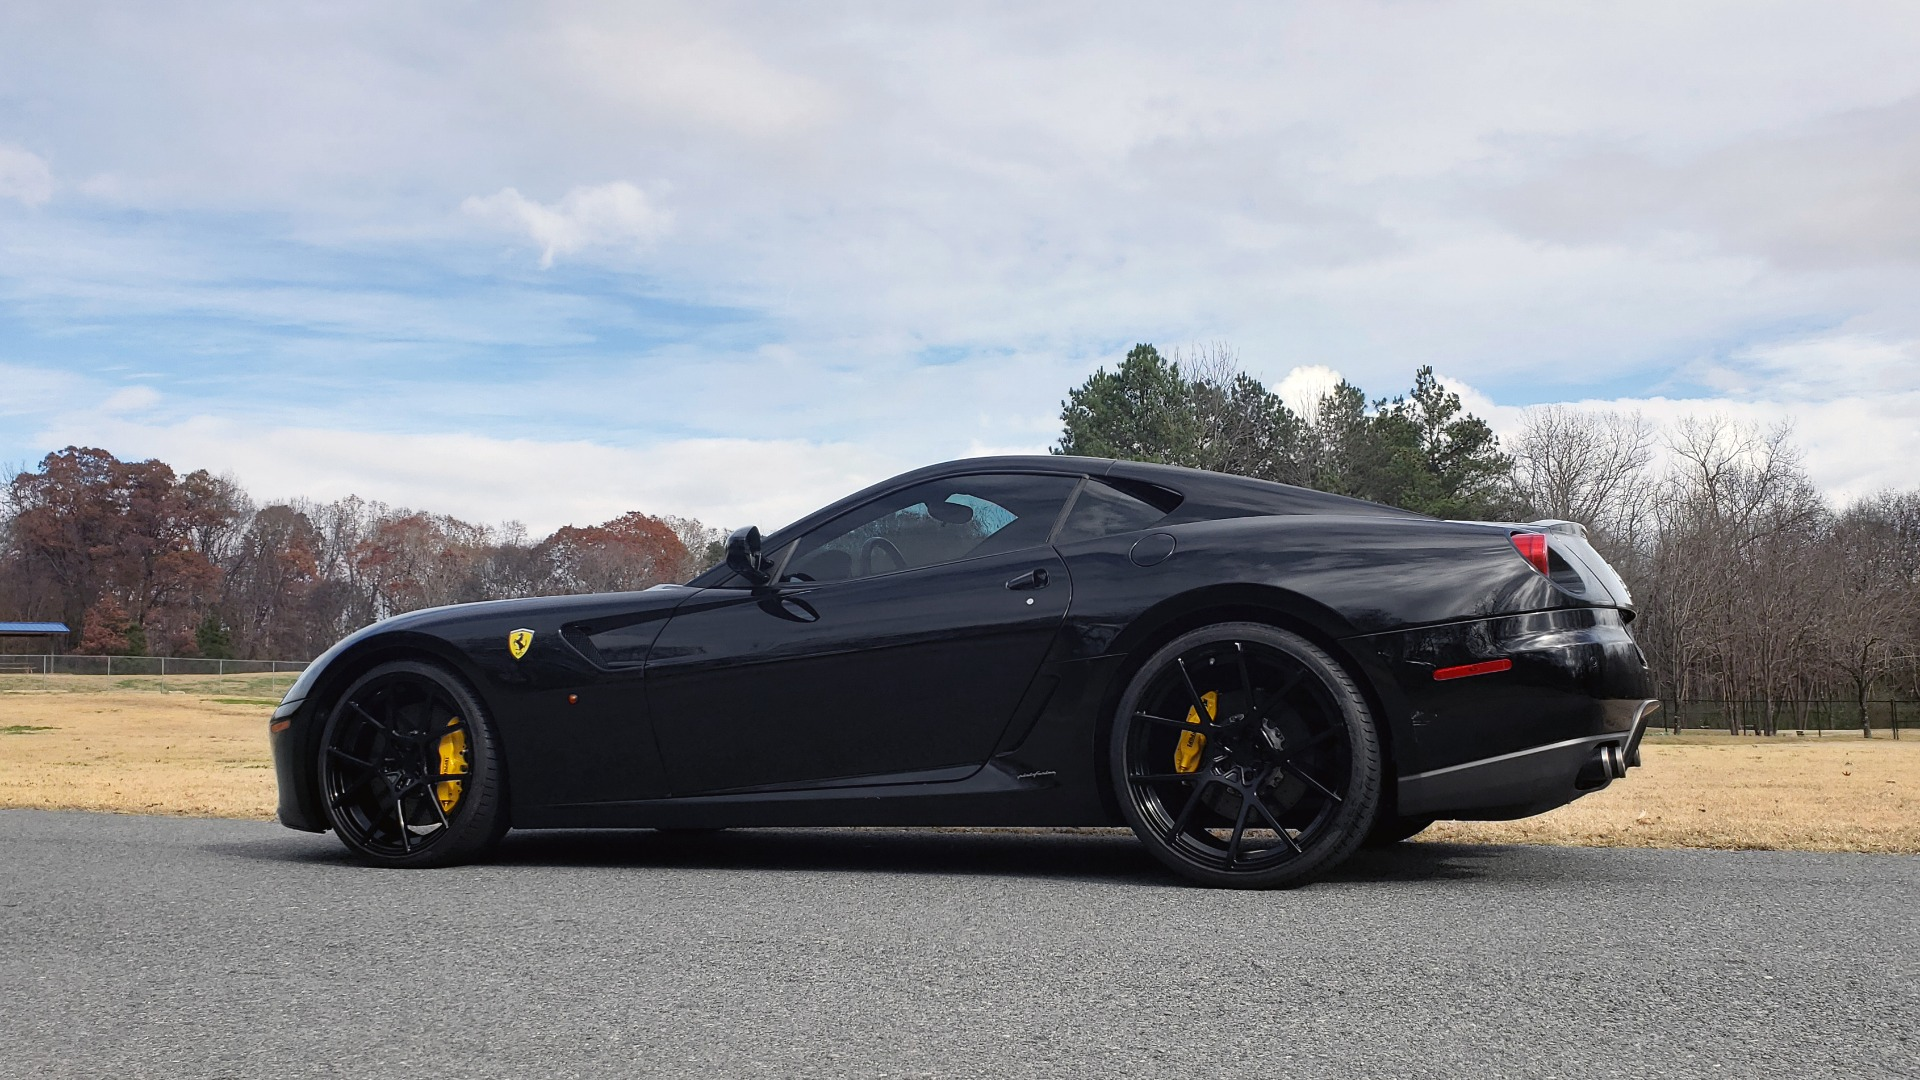 Used 2007 Ferrari 599 GTB FIORANO HGTE / V12 / F1 TRANS / NAV / BOSE / CUSTOM WHEELS for sale Sold at Formula Imports in Charlotte NC 28227 11